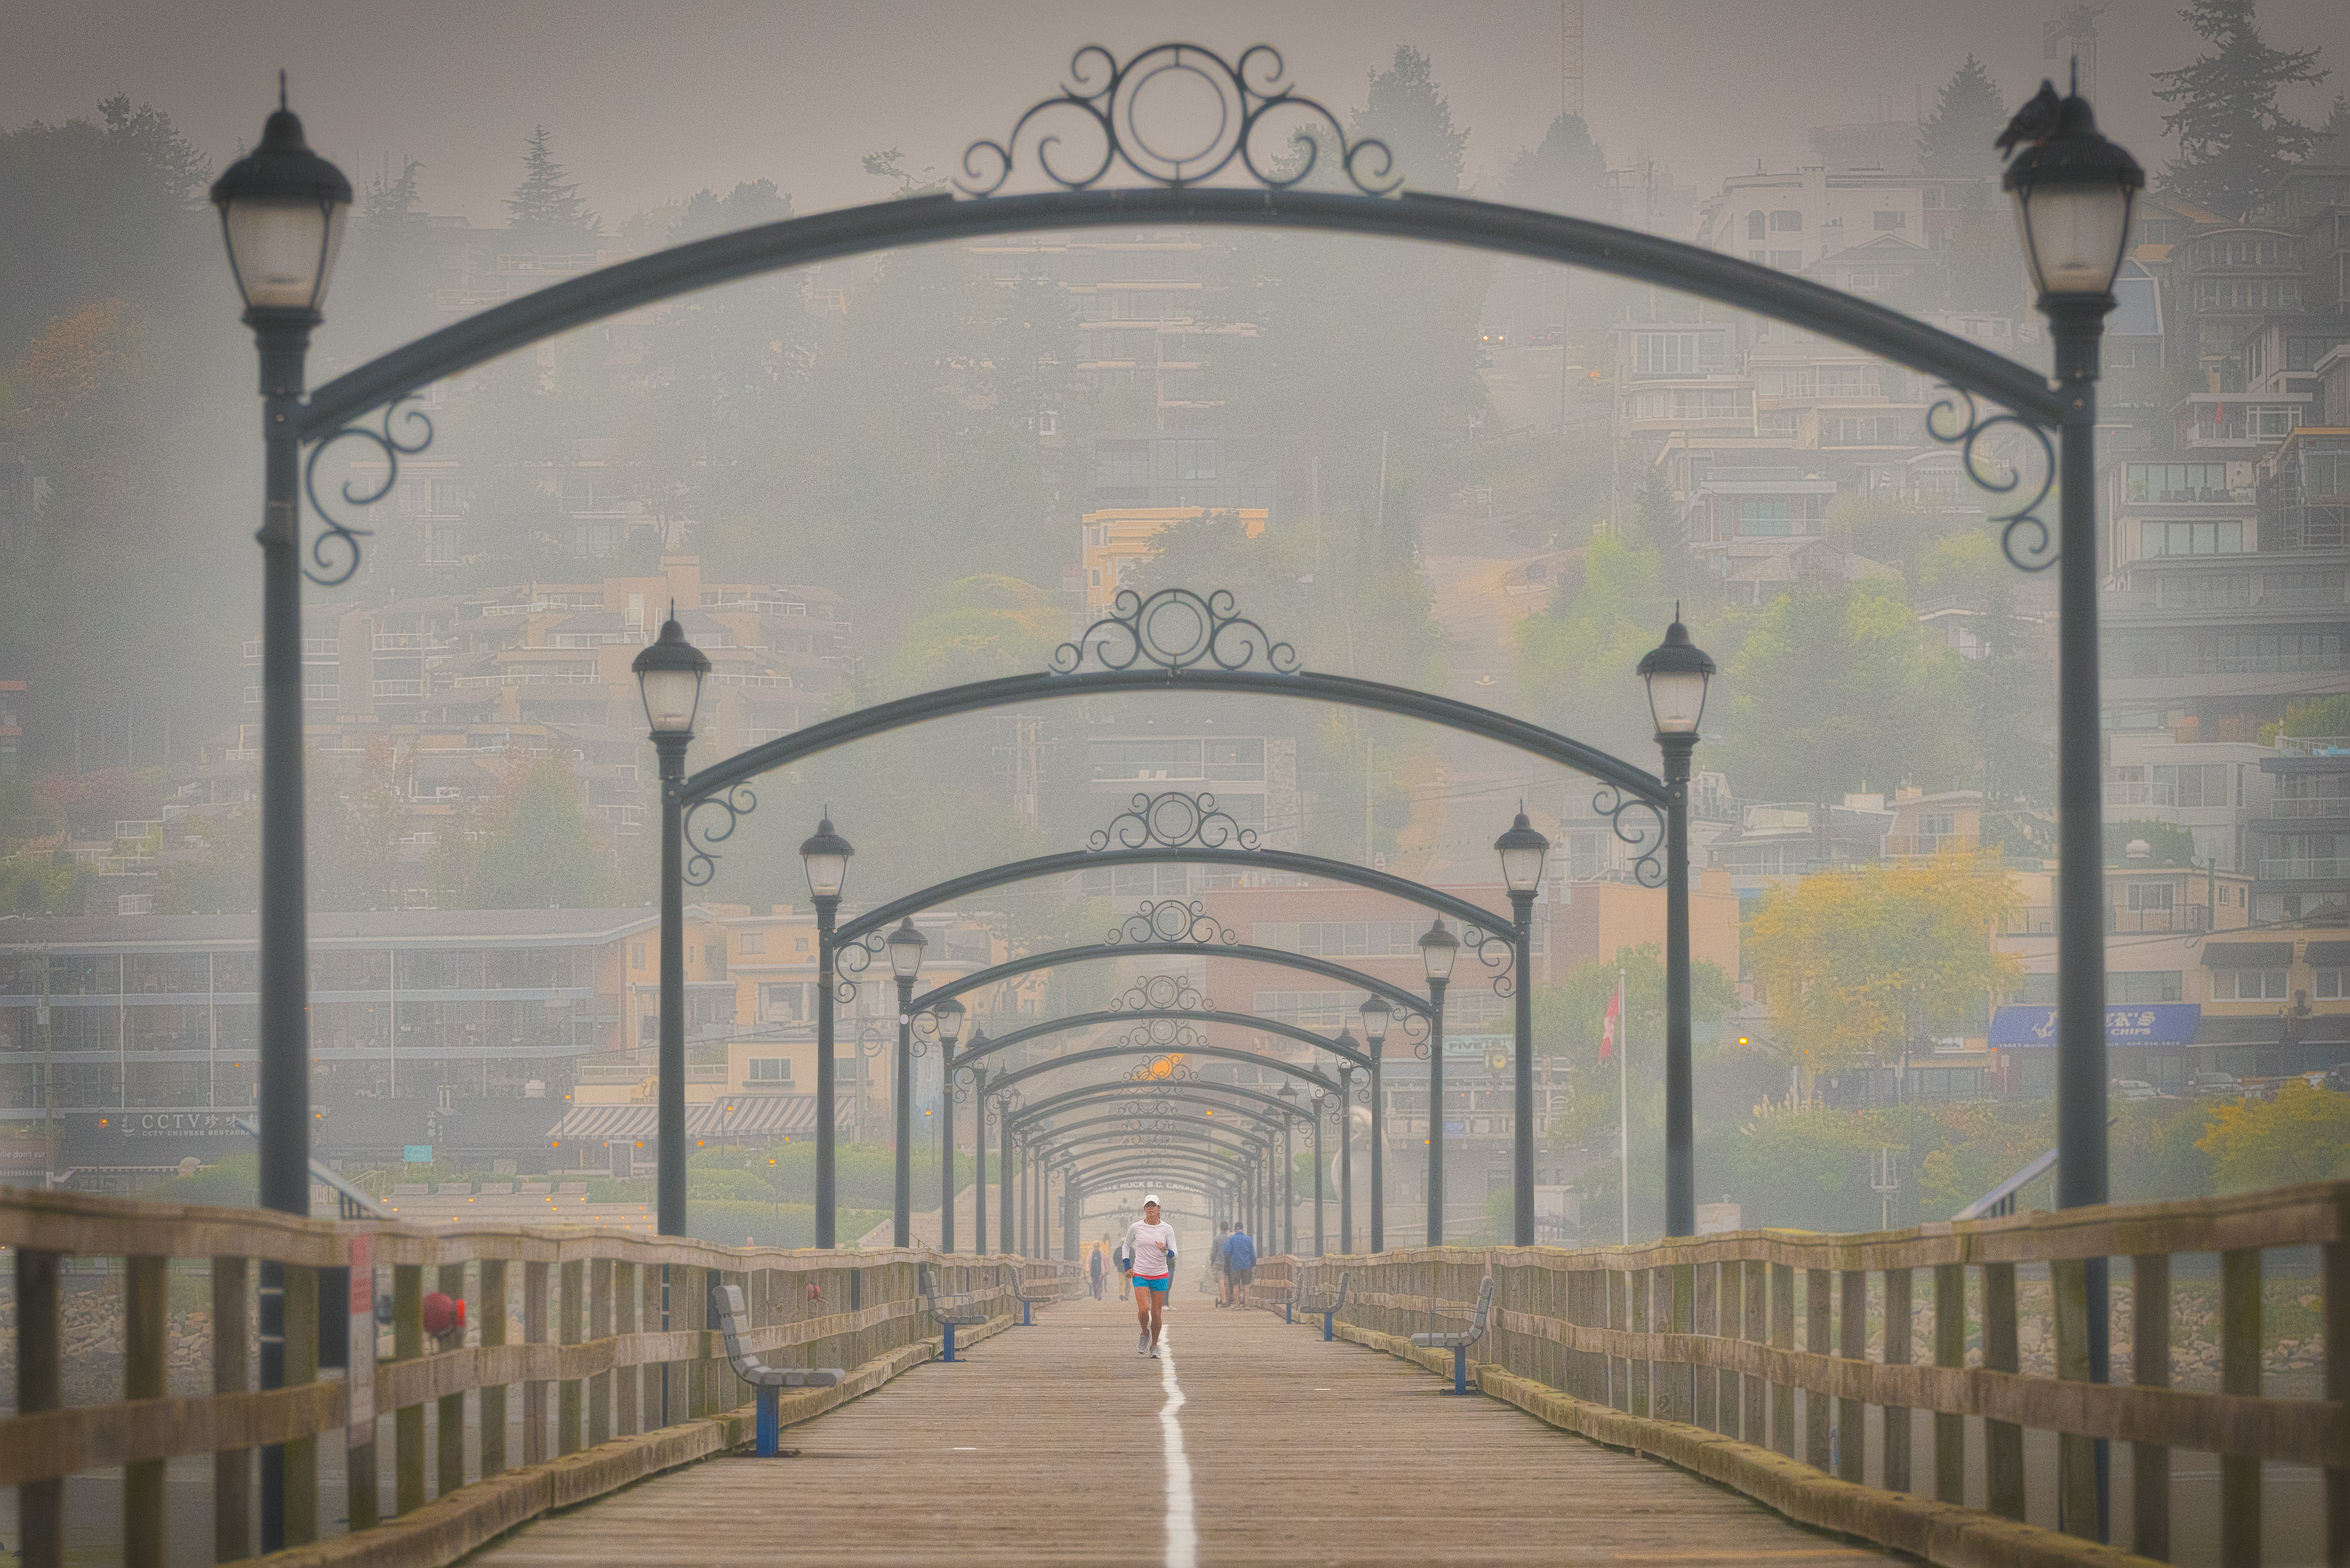 Smoke covers a boardwalk and its archways overhead